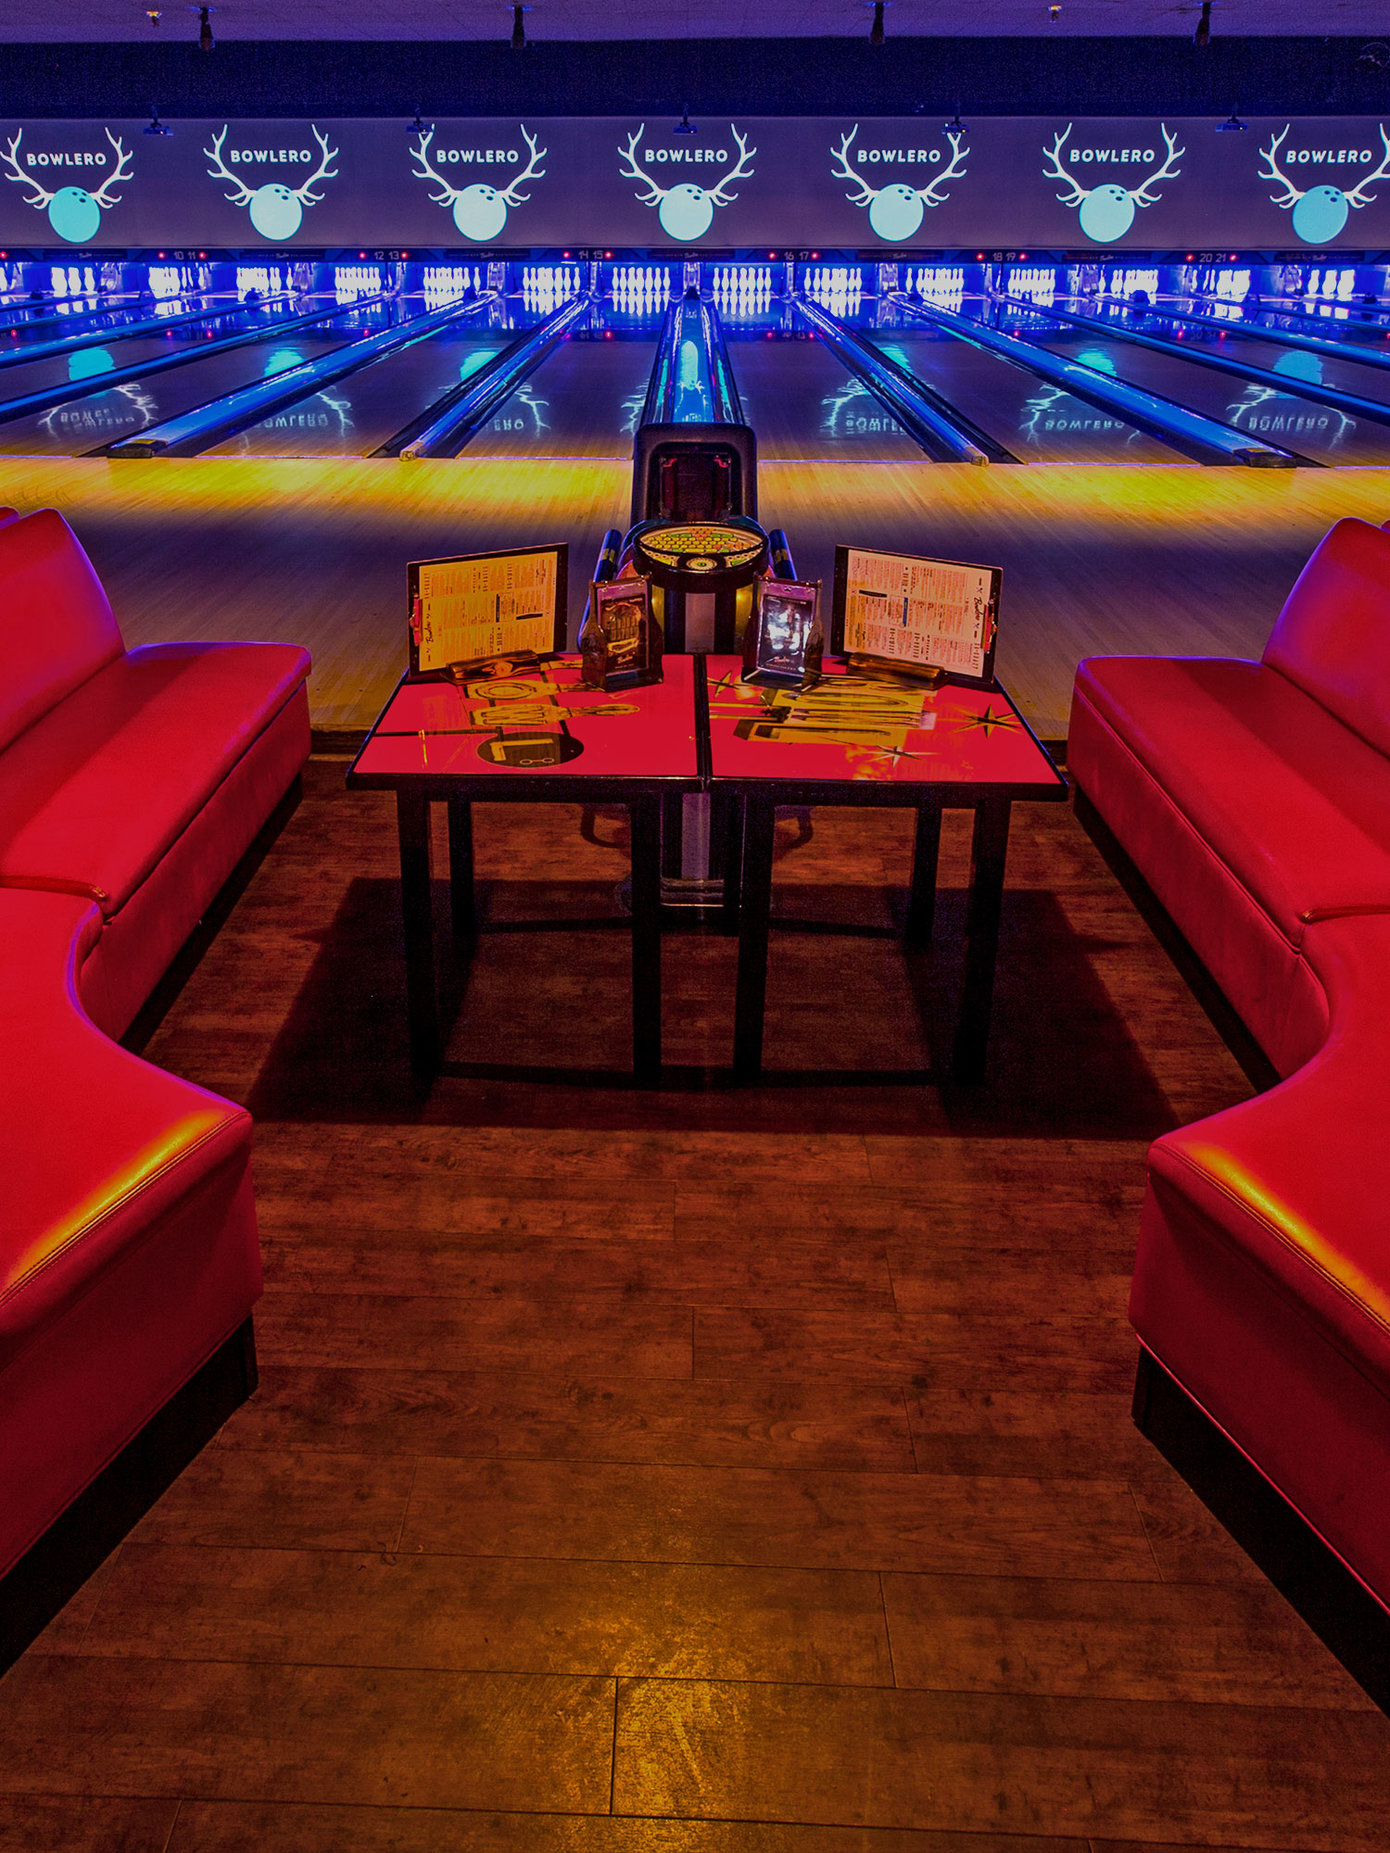 woodland hills Bowling Alley - Best Rewards, Deals, Coupons, and Loyalty Programs